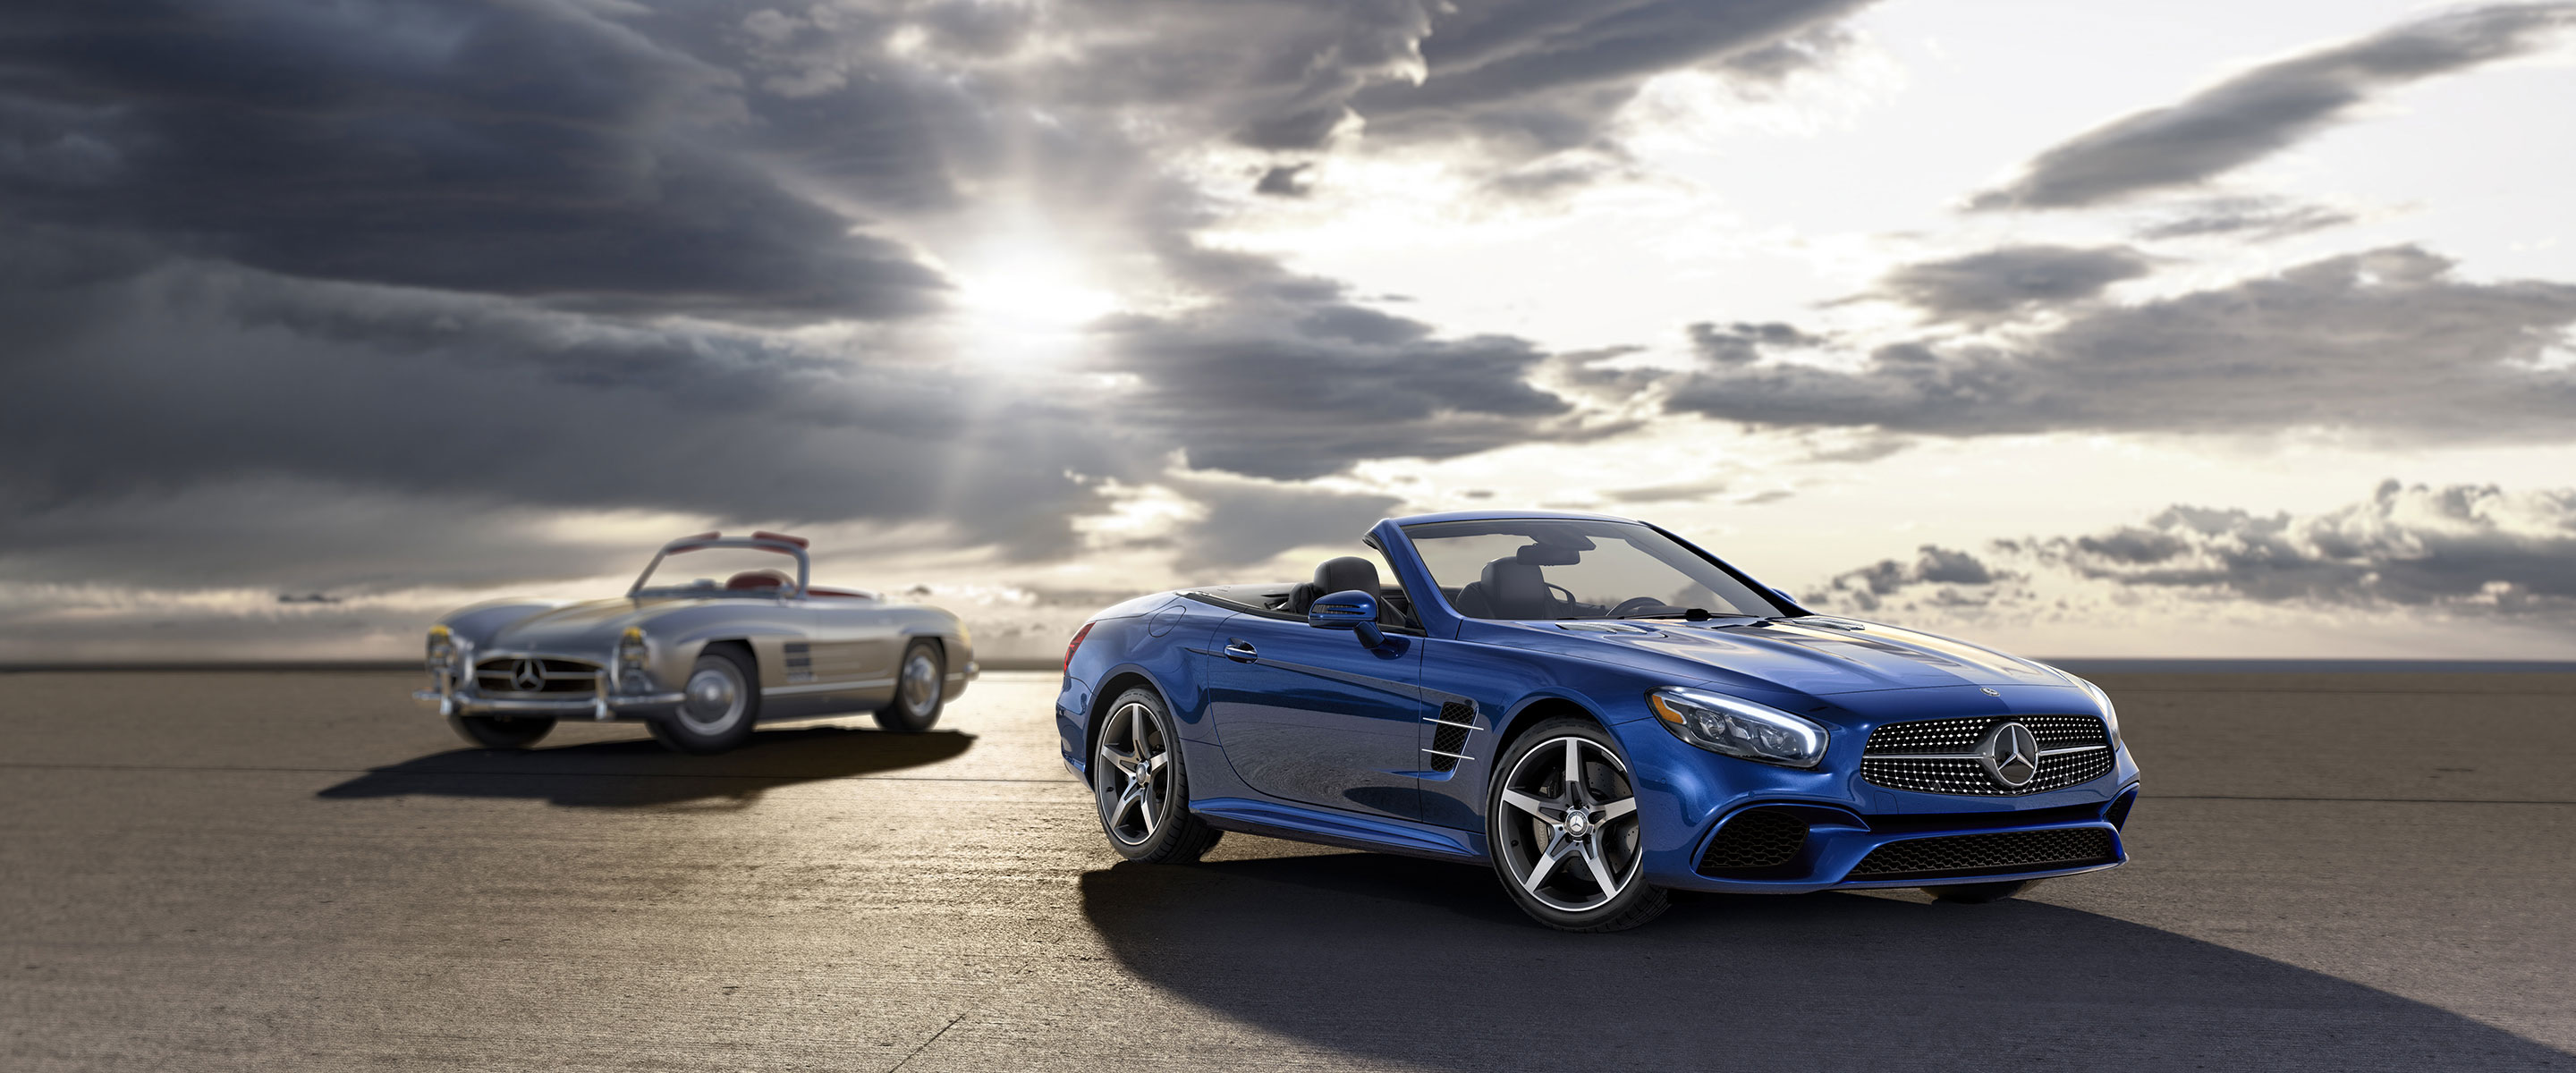 New Mercedes Benz Sl Roadster Buy Lease And Finance